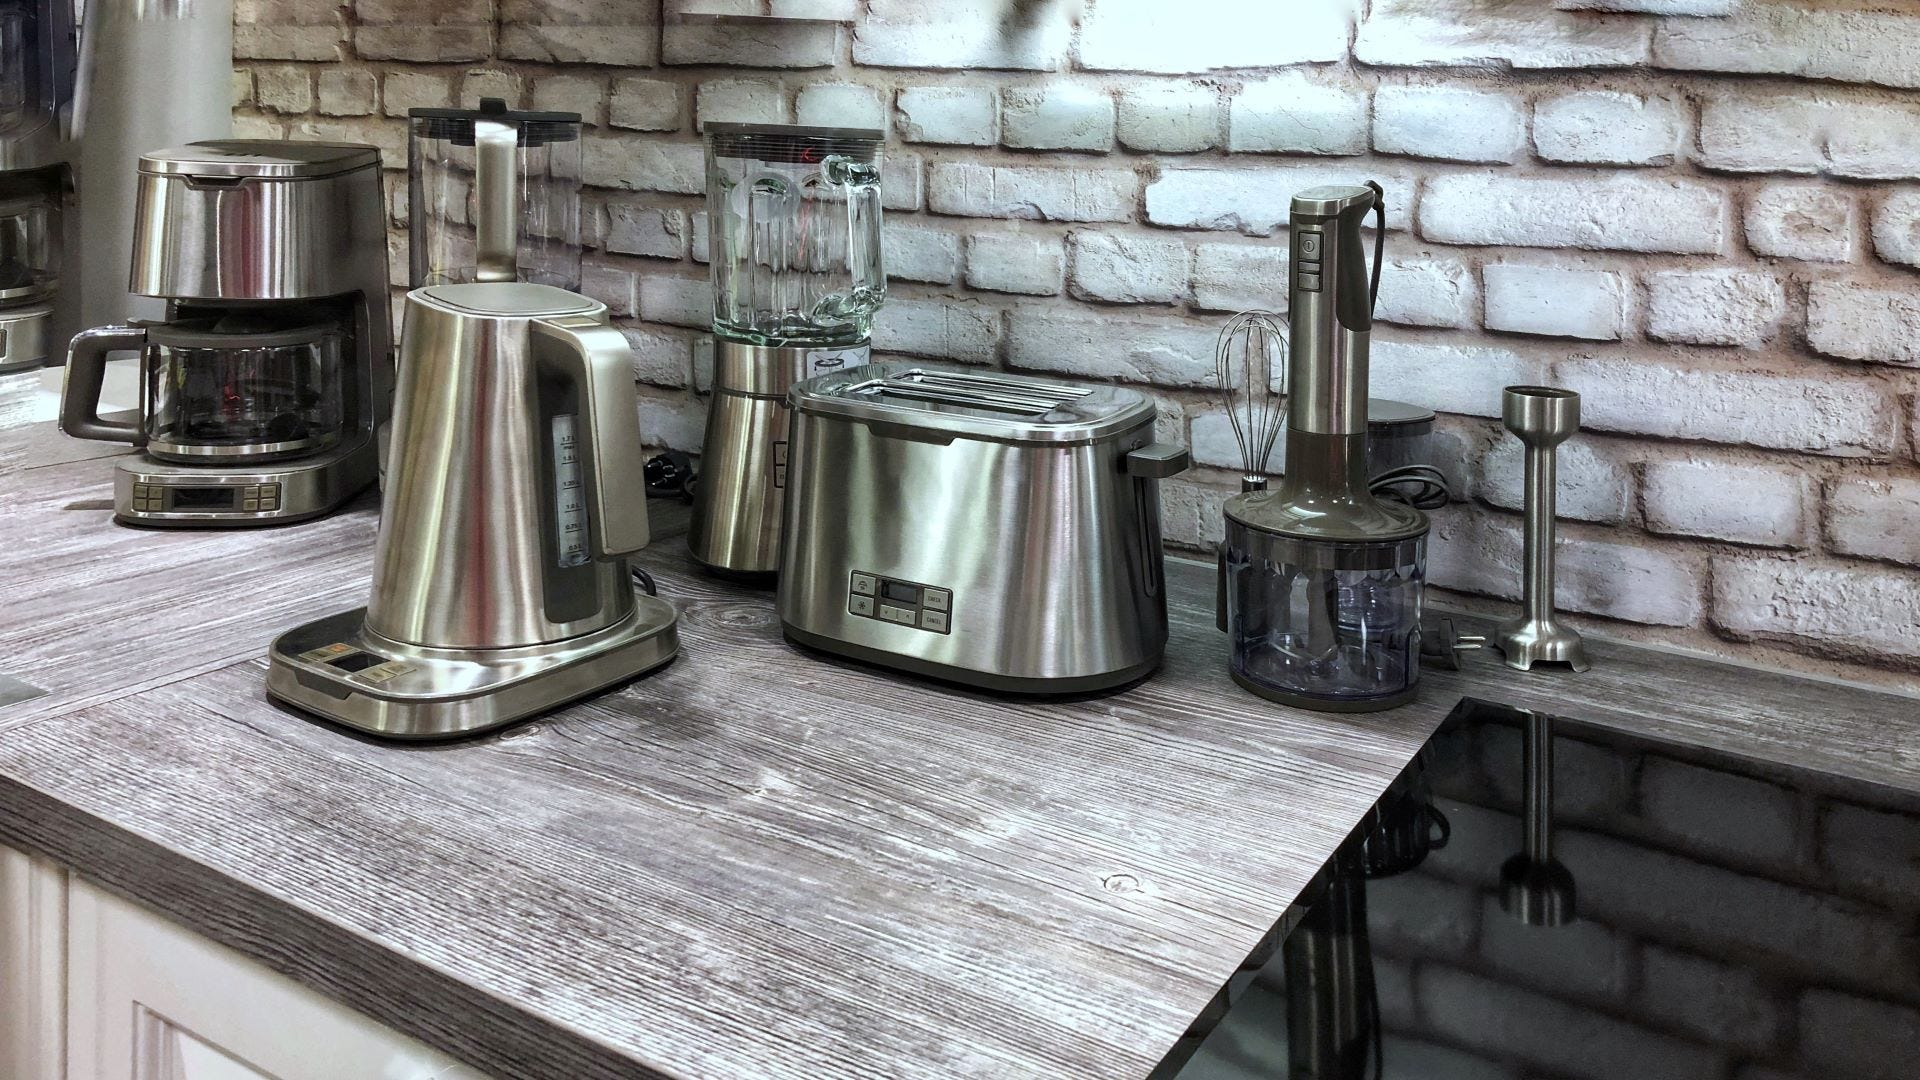 Small stainless-steel kitchen appliances sitting on a counter.